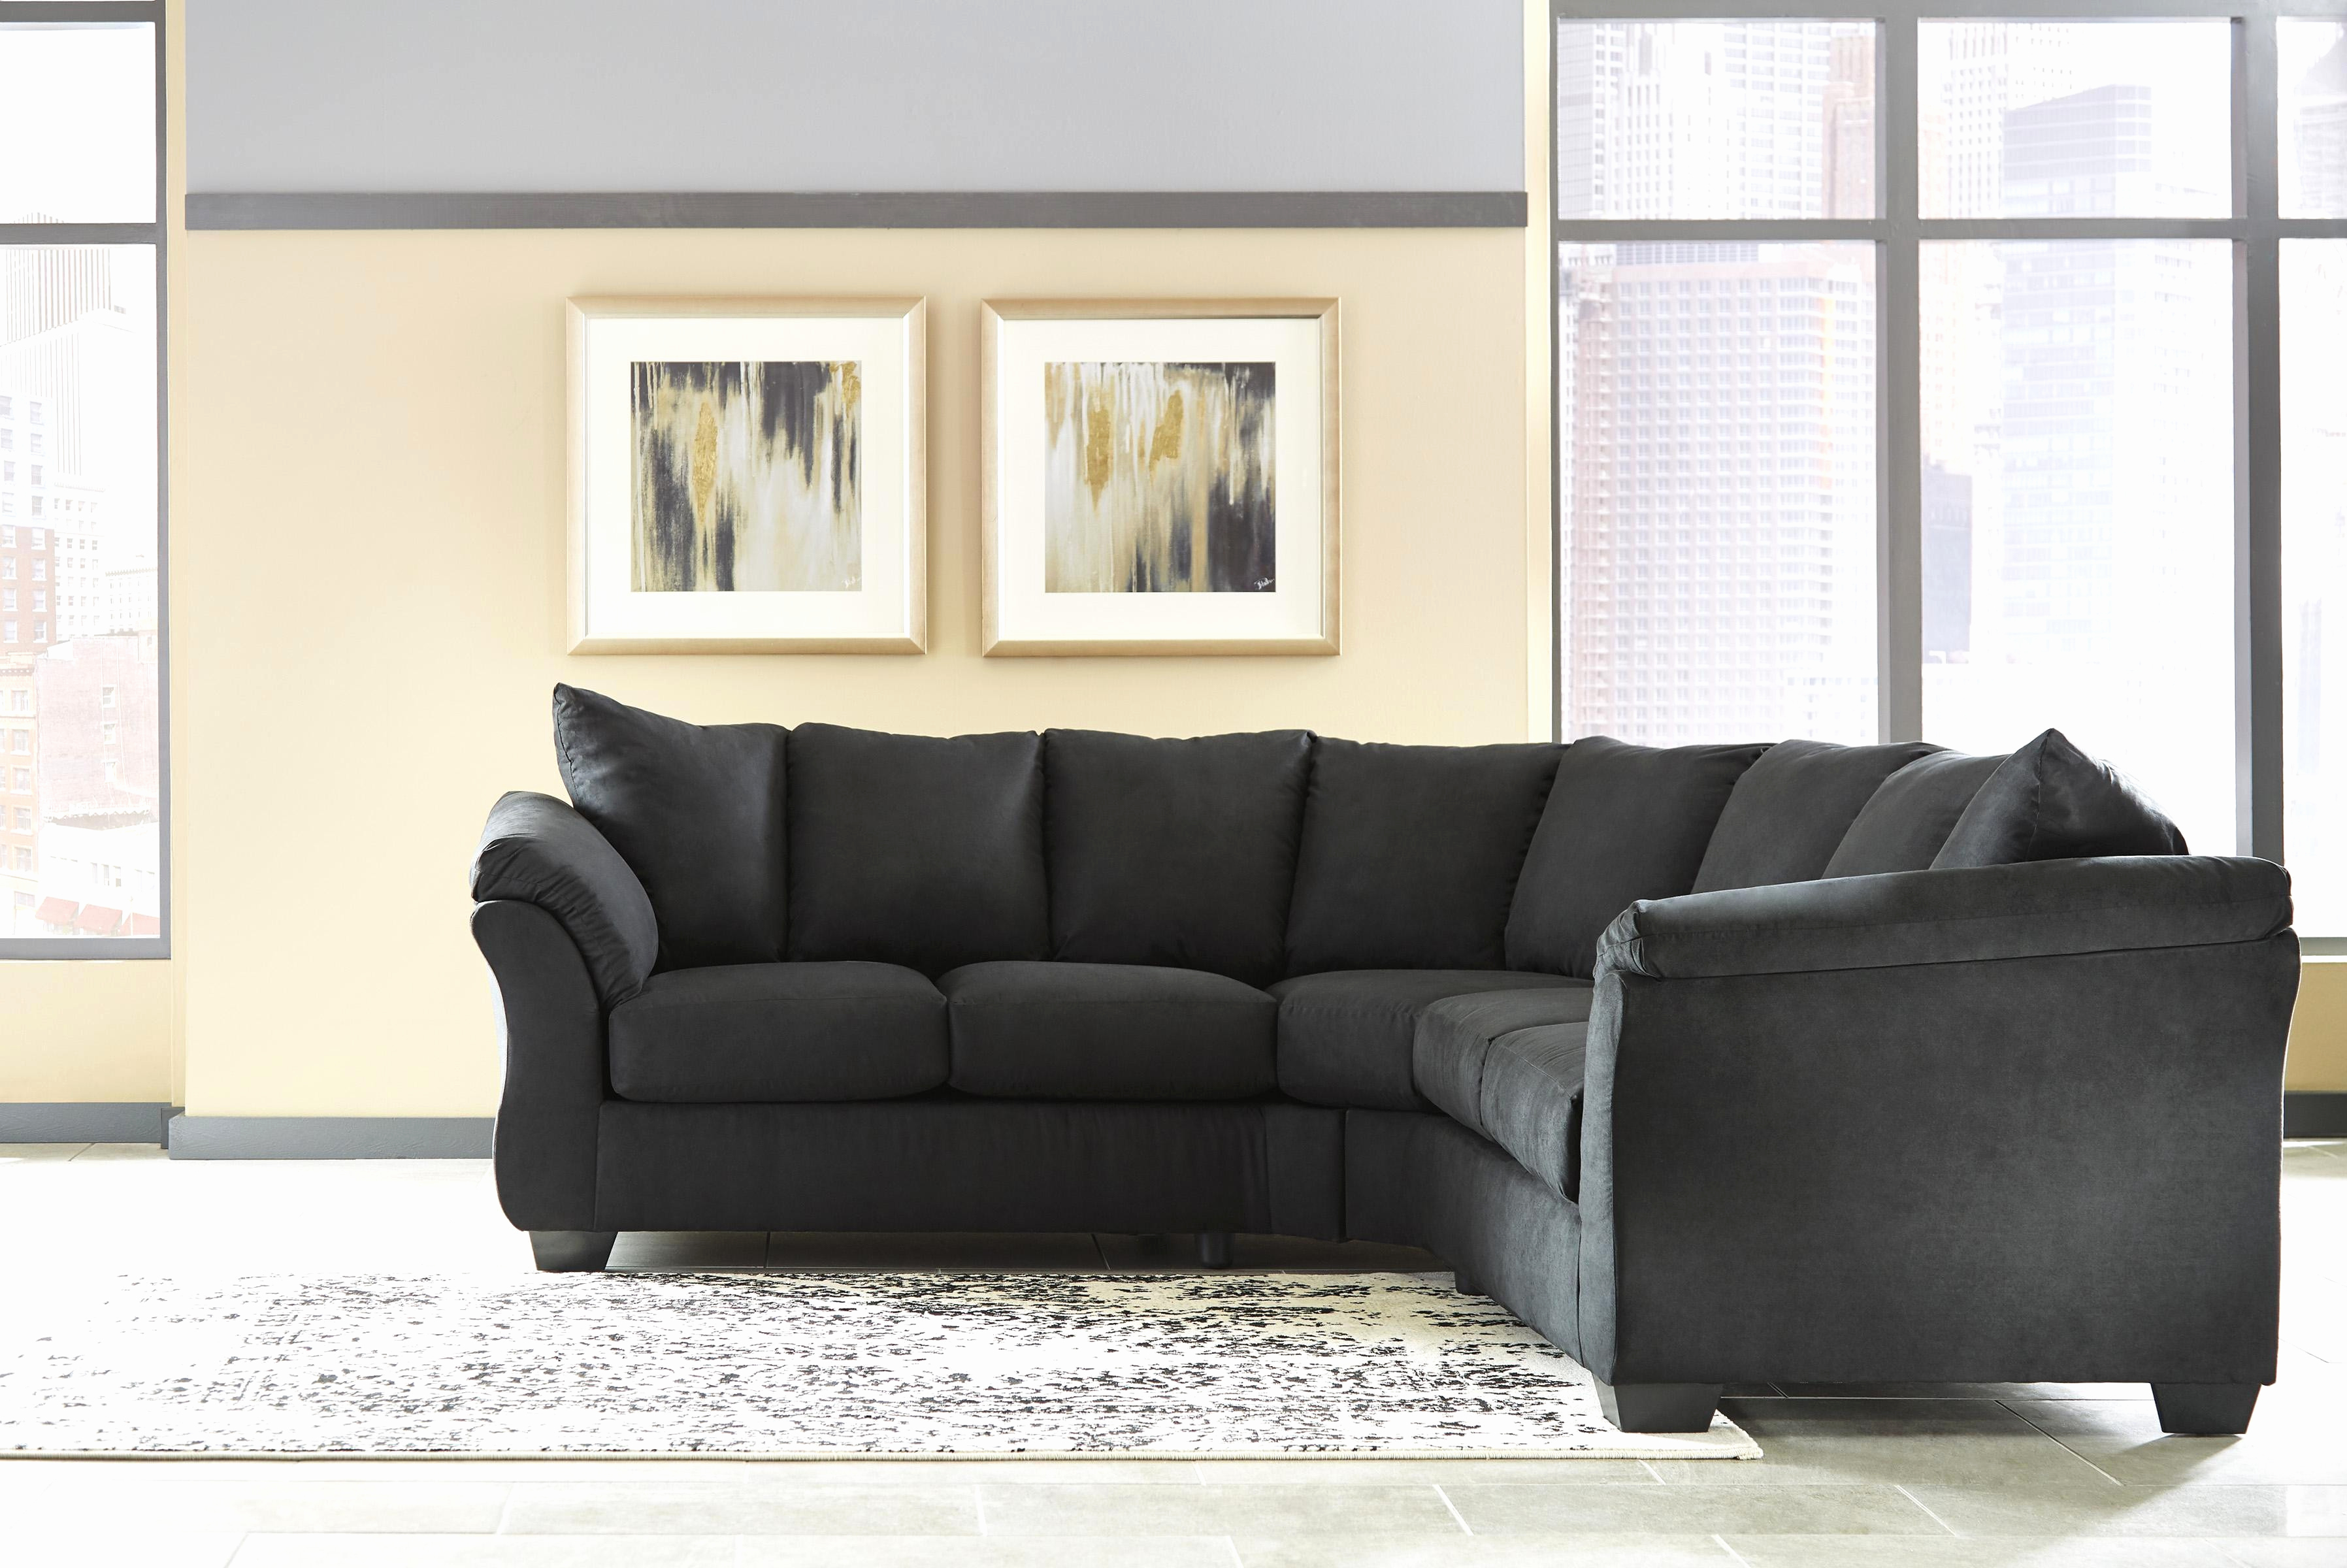 Canape Tissus Luxe Luxe Photographie Polton Et sofa Beau Classy Conforama Canape Clic Clac Minimaliste